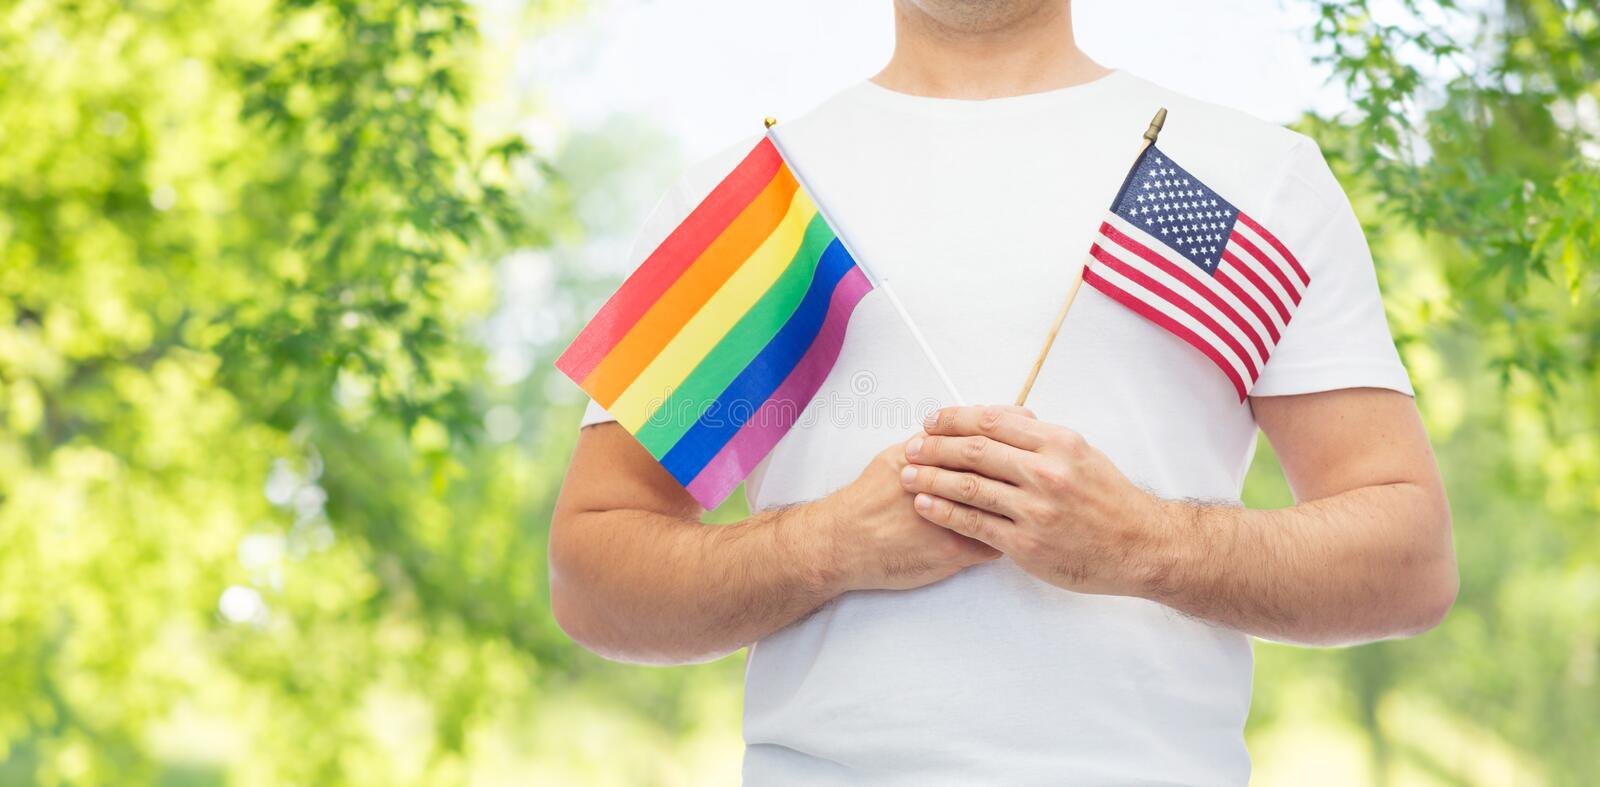 Man with gay pride rainbow flag and wristband stock images